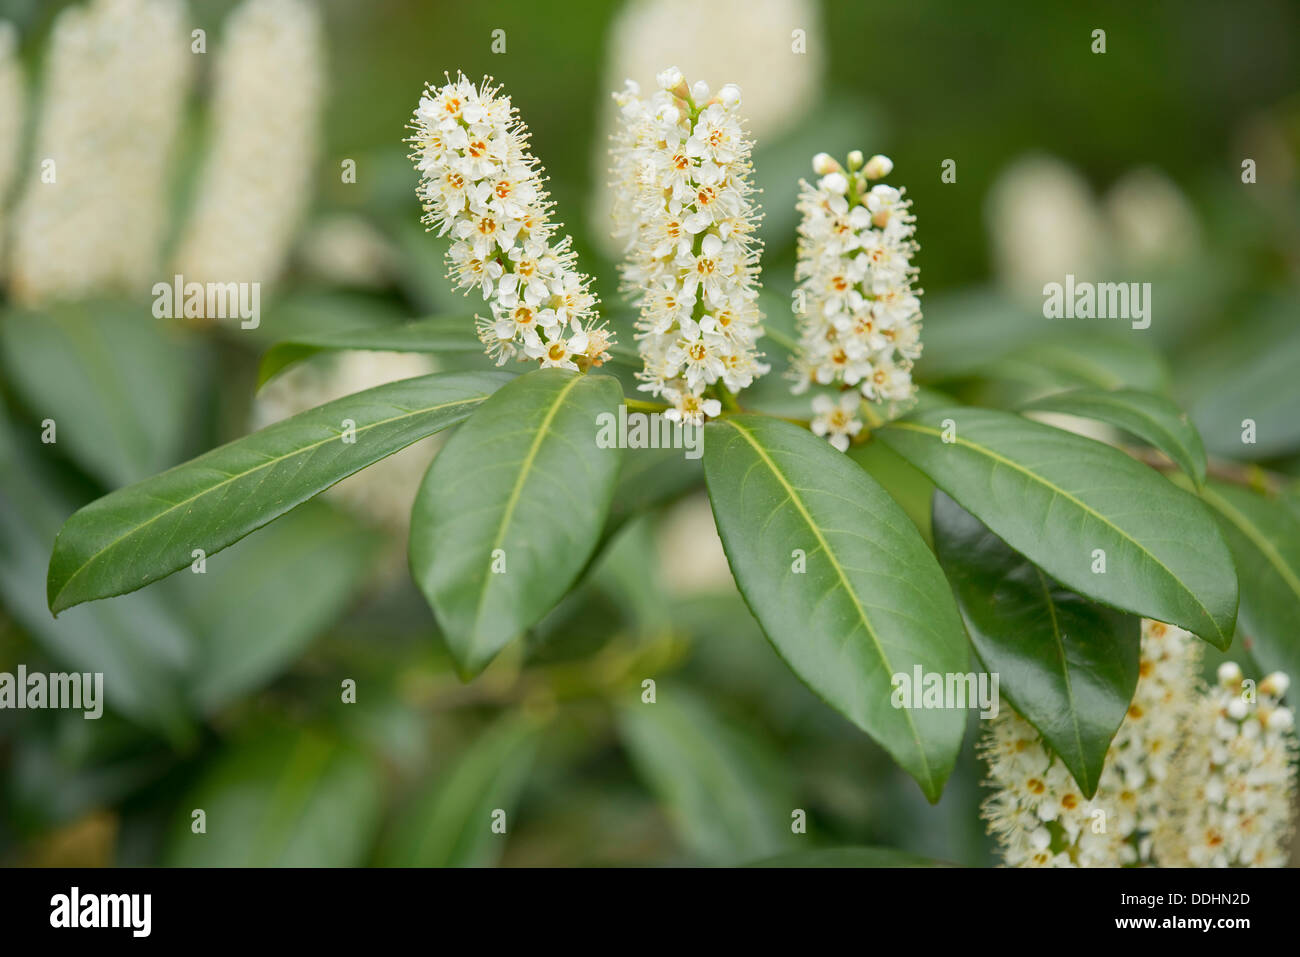 Cherry Laurel or Common Laurel (Prunus laurocerasus, Laurocerasus officinalis) flowers and leaves, ornamental shrub, native to - Stock Image